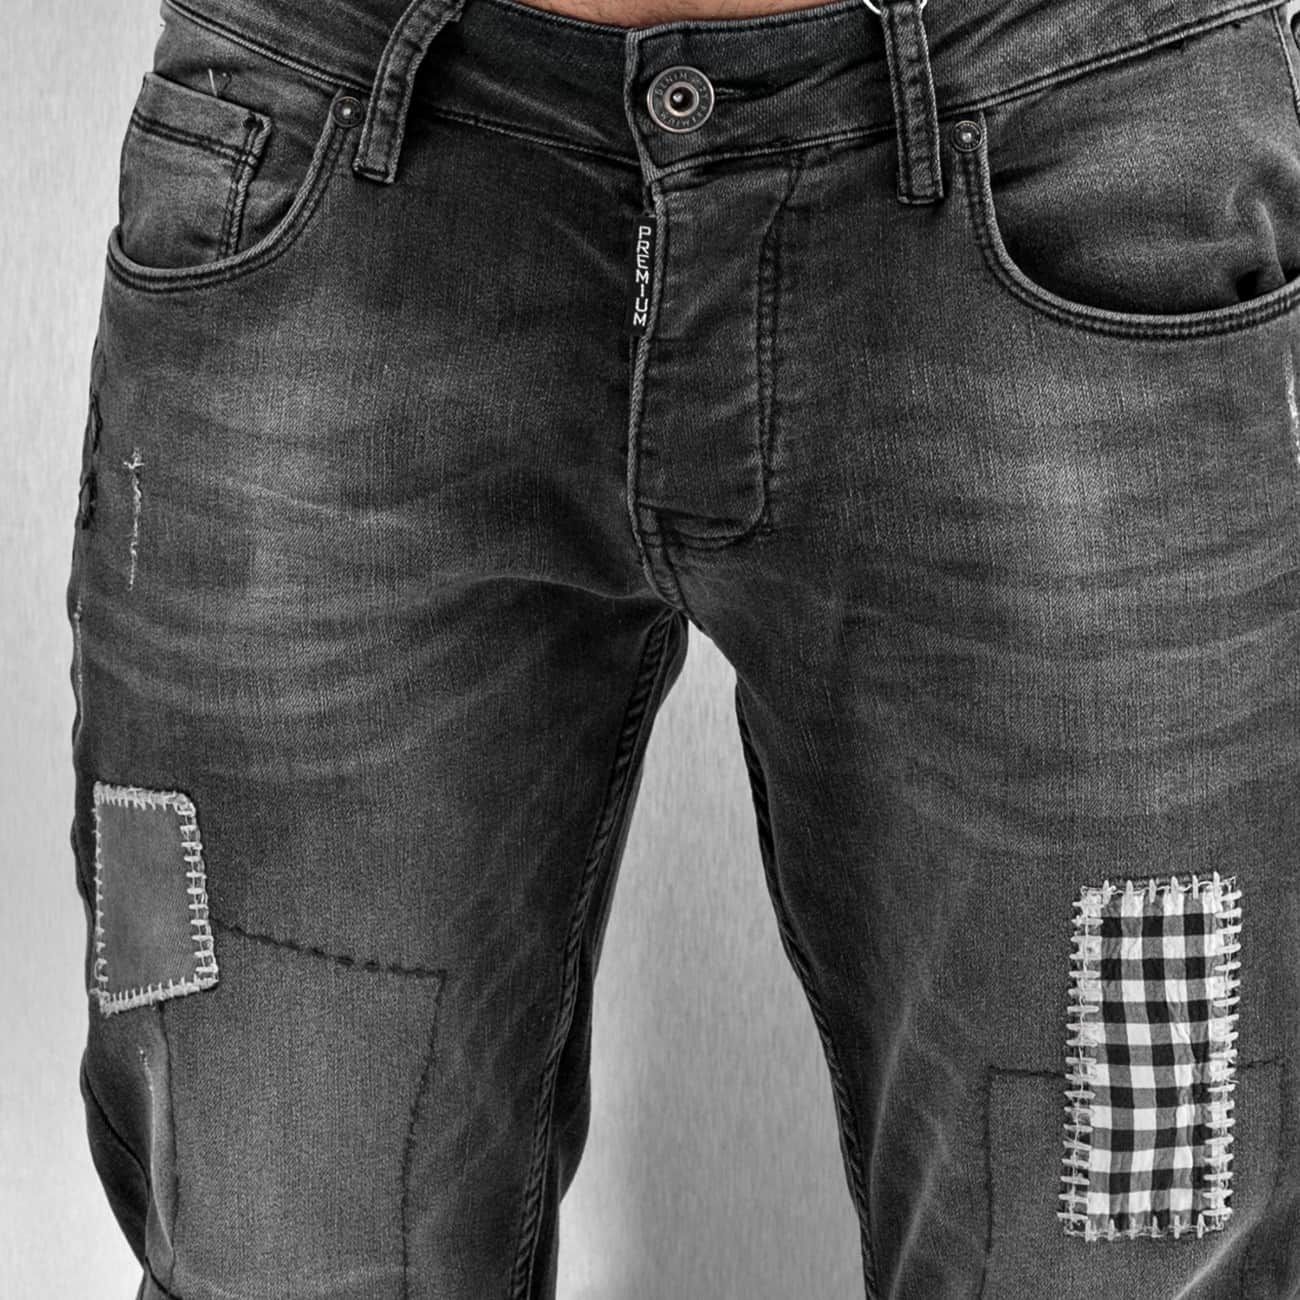 2Y / Slim Fit Jeans Latan in grey - Streetscenter